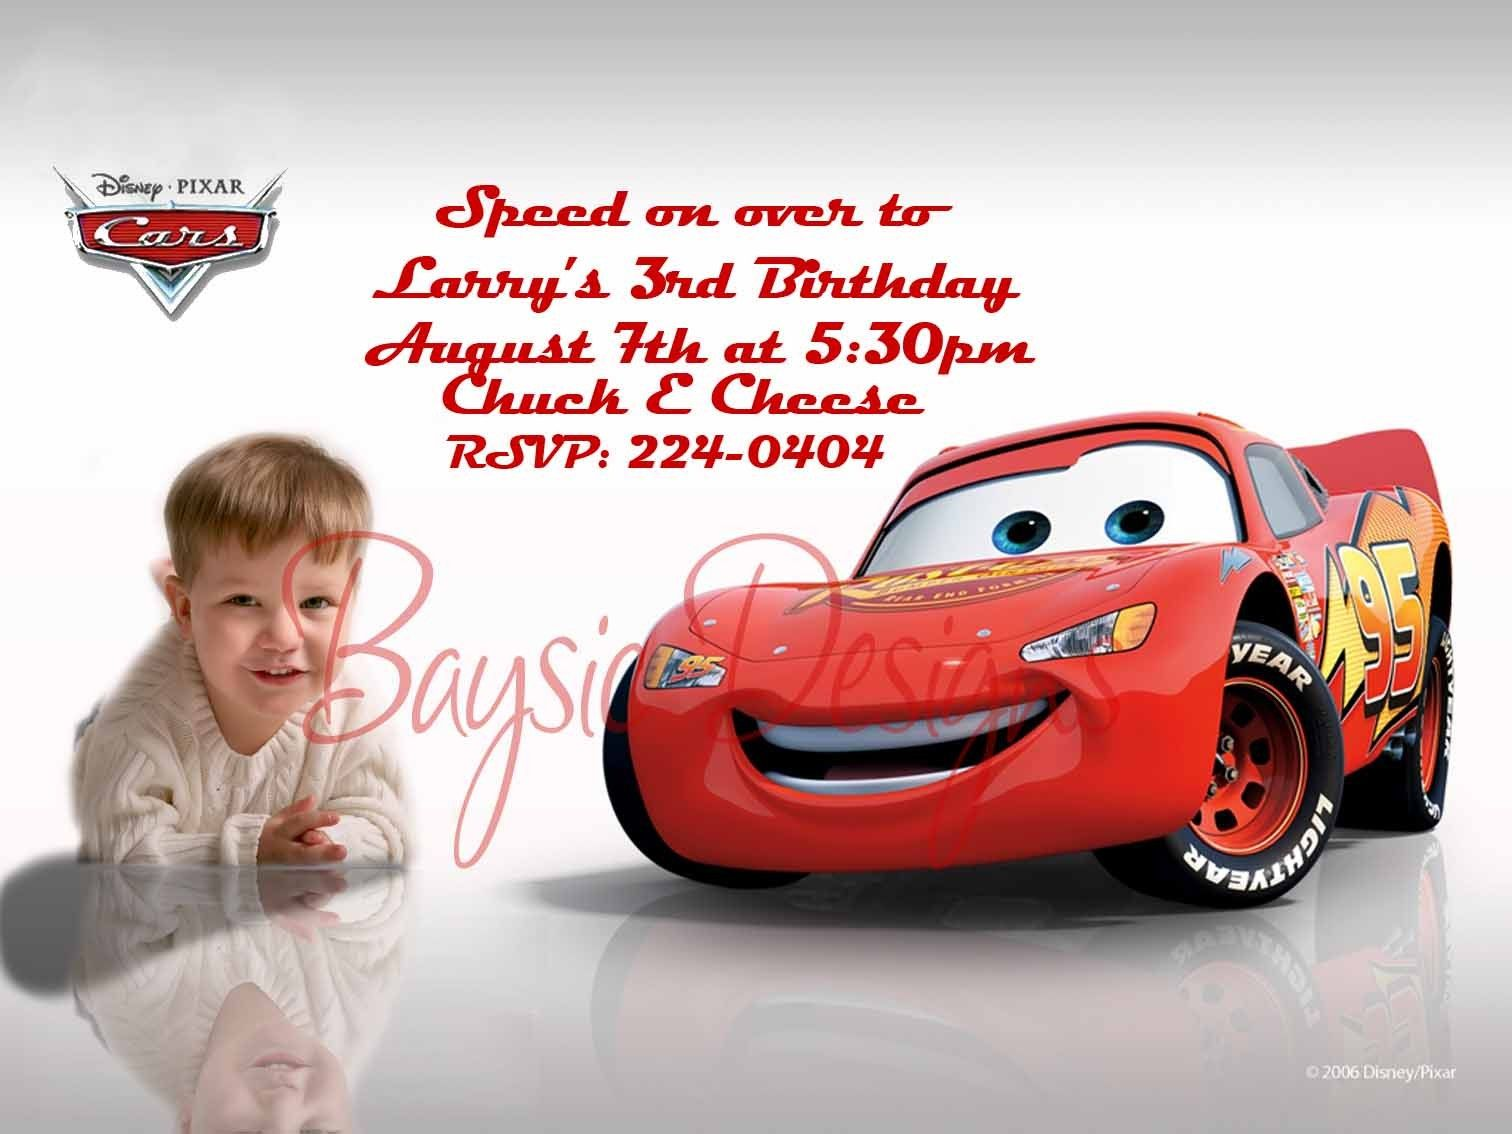 CUSTOM DISNEY CARS BIRTHDAY INVITATIONS FREE SHIPPING 1999 via